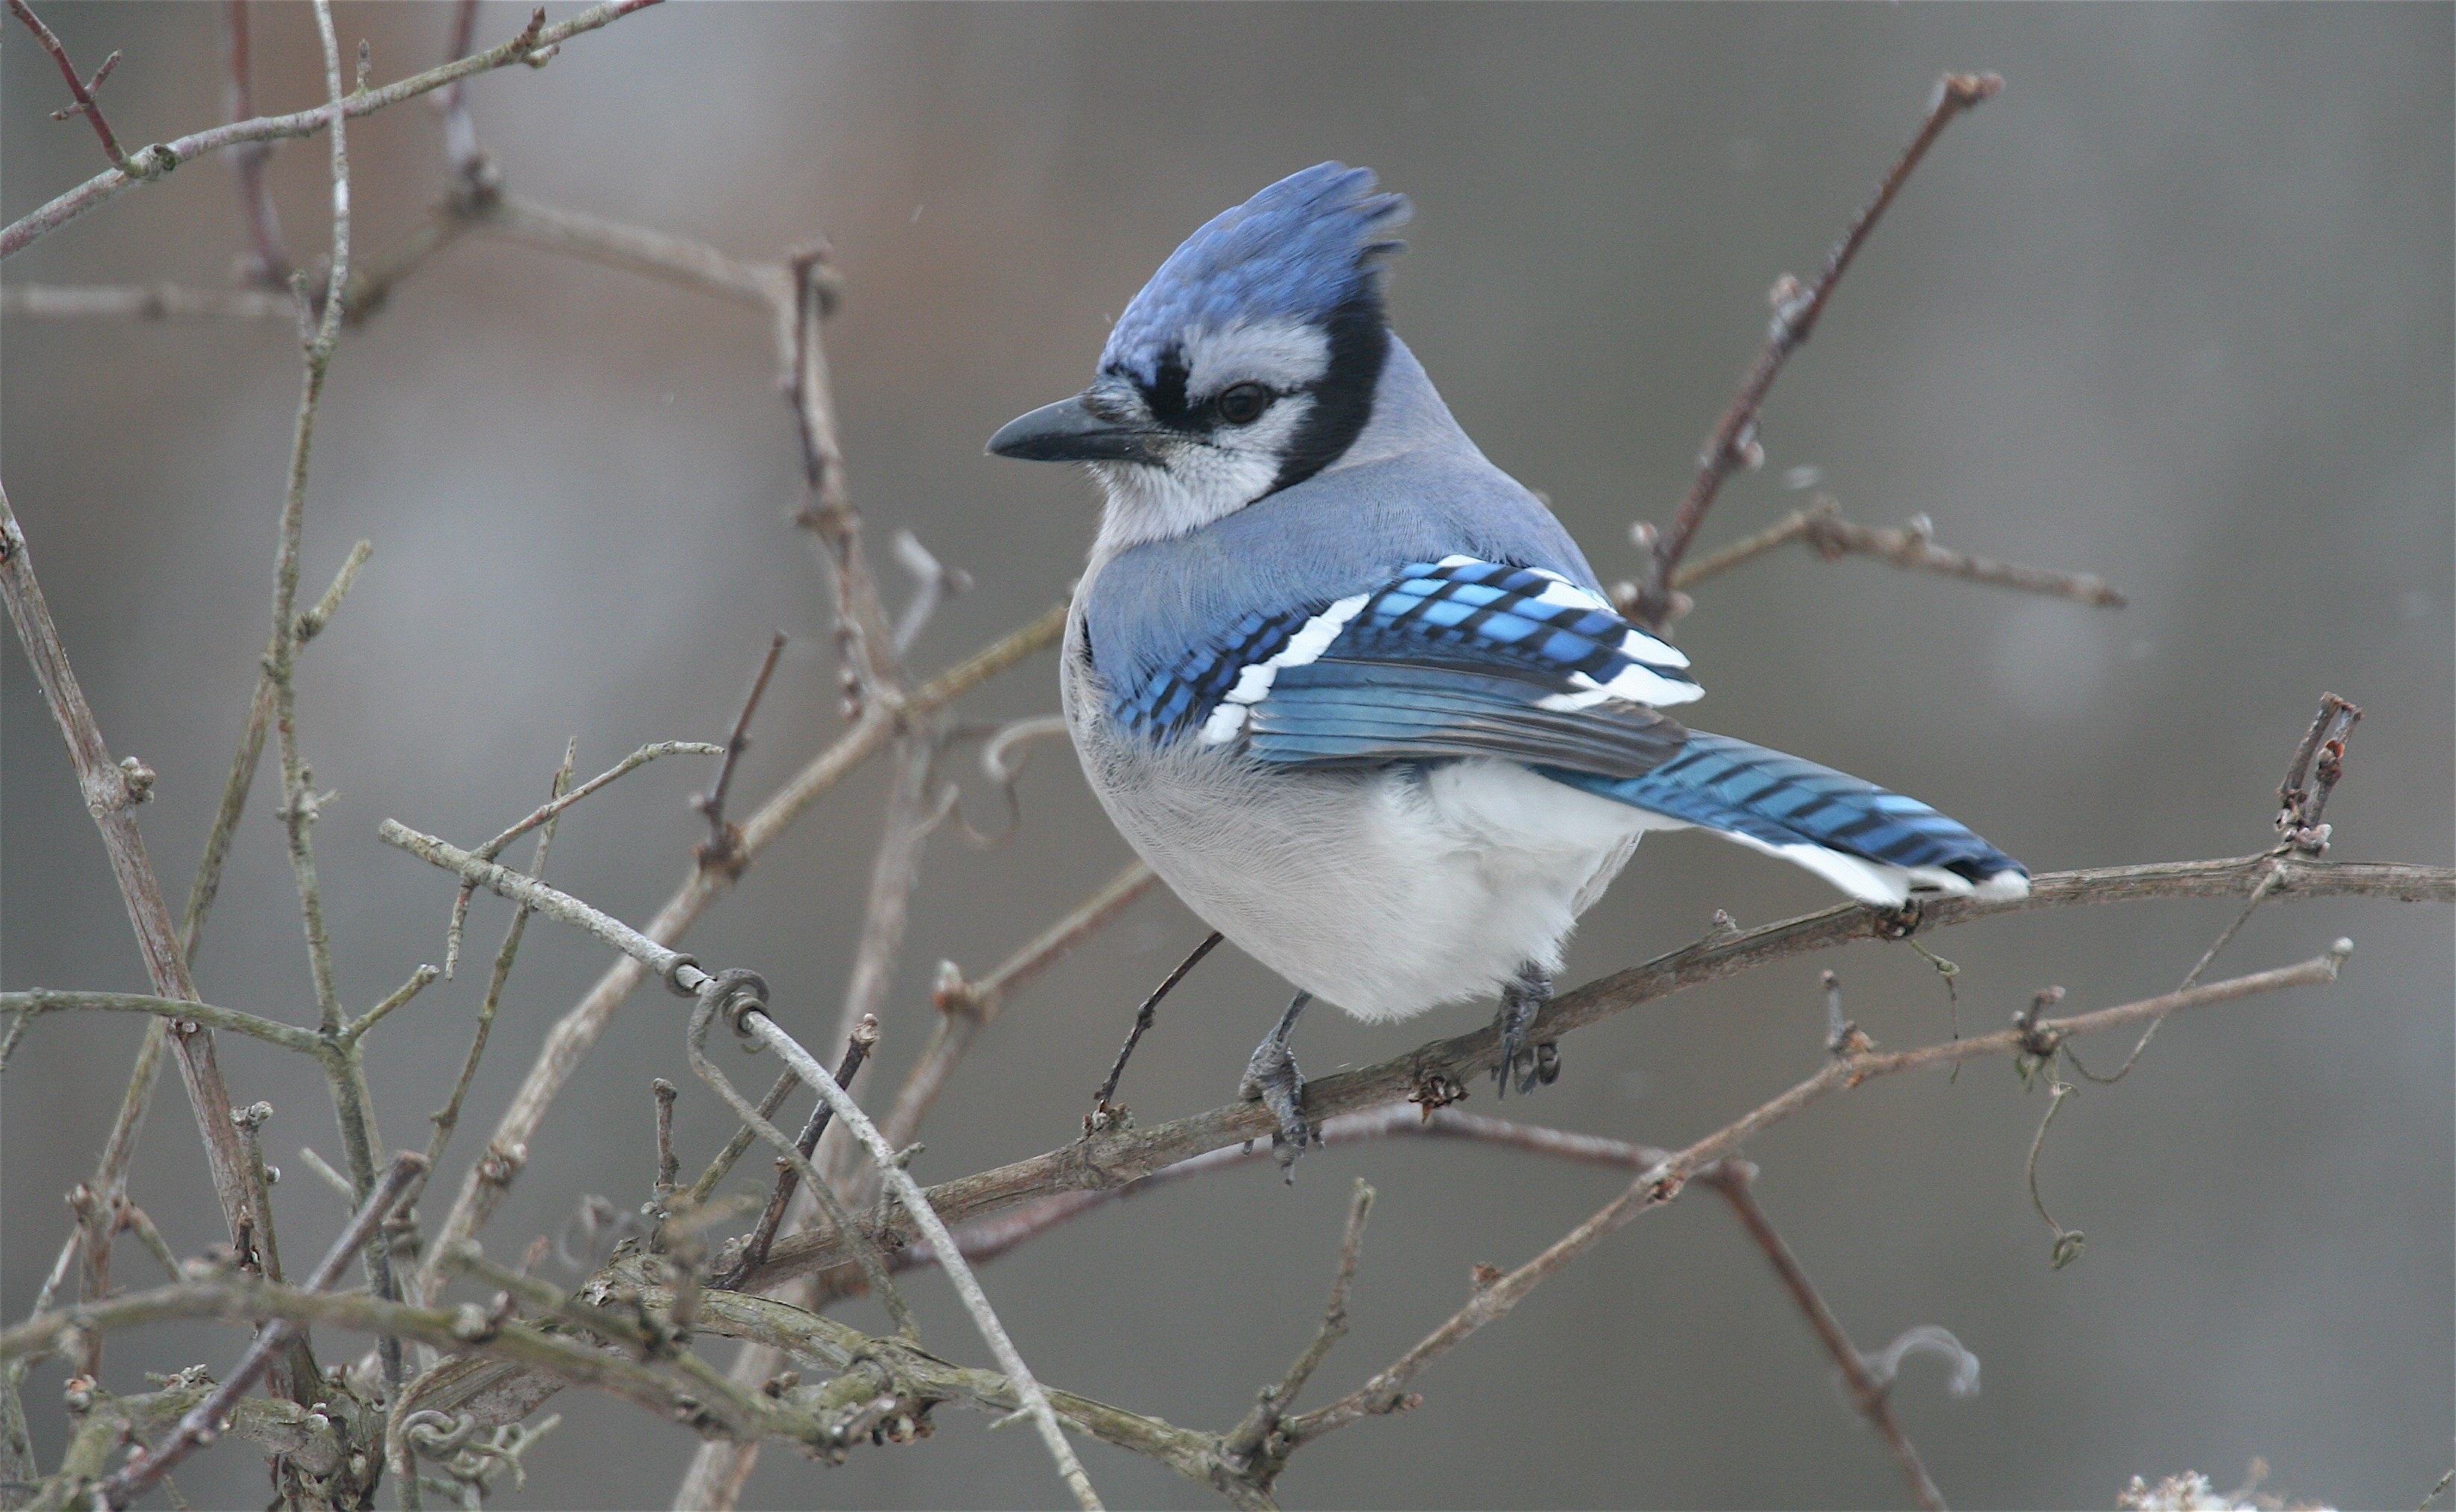 birds blue jay HD Wallpaper   General 233353 3296x2029